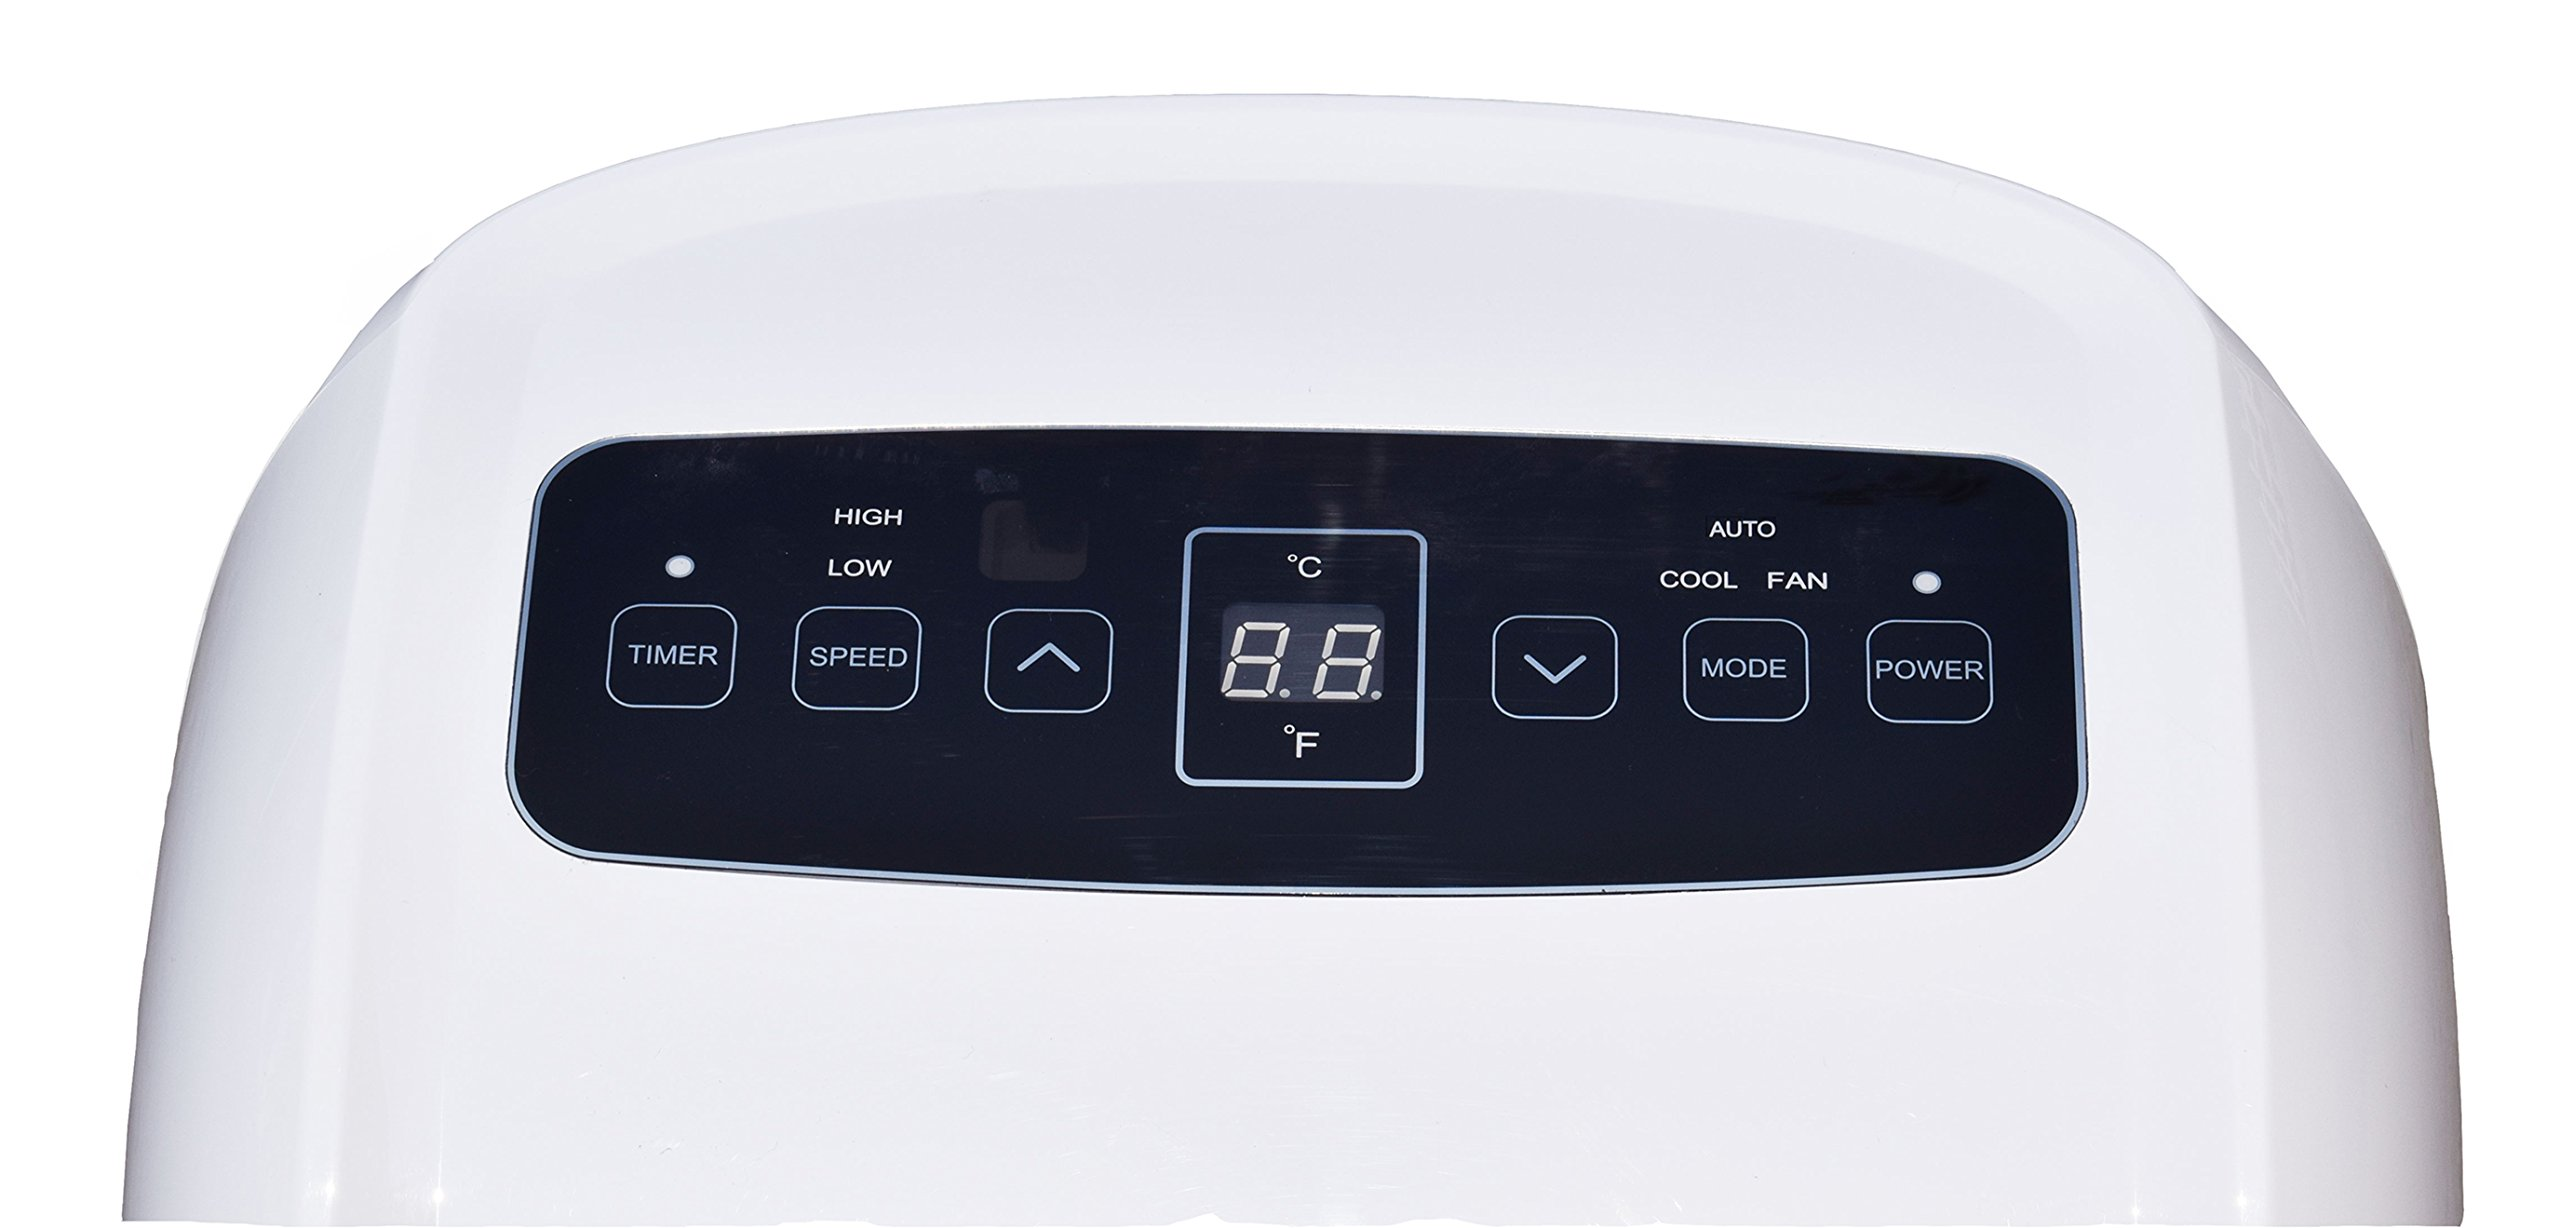 CCH YPLA-08C Portable Air Conditioner 5 Ultra compact for easy handling and positioning. Weighs only 47 lbs 8,000 BTU's of cooling power keeps a room up to250 sq. Ft. Cool and comfortable and partially Cools an Area up to 350 sq.Ft Washable and reusable air filter saves money on Replacements